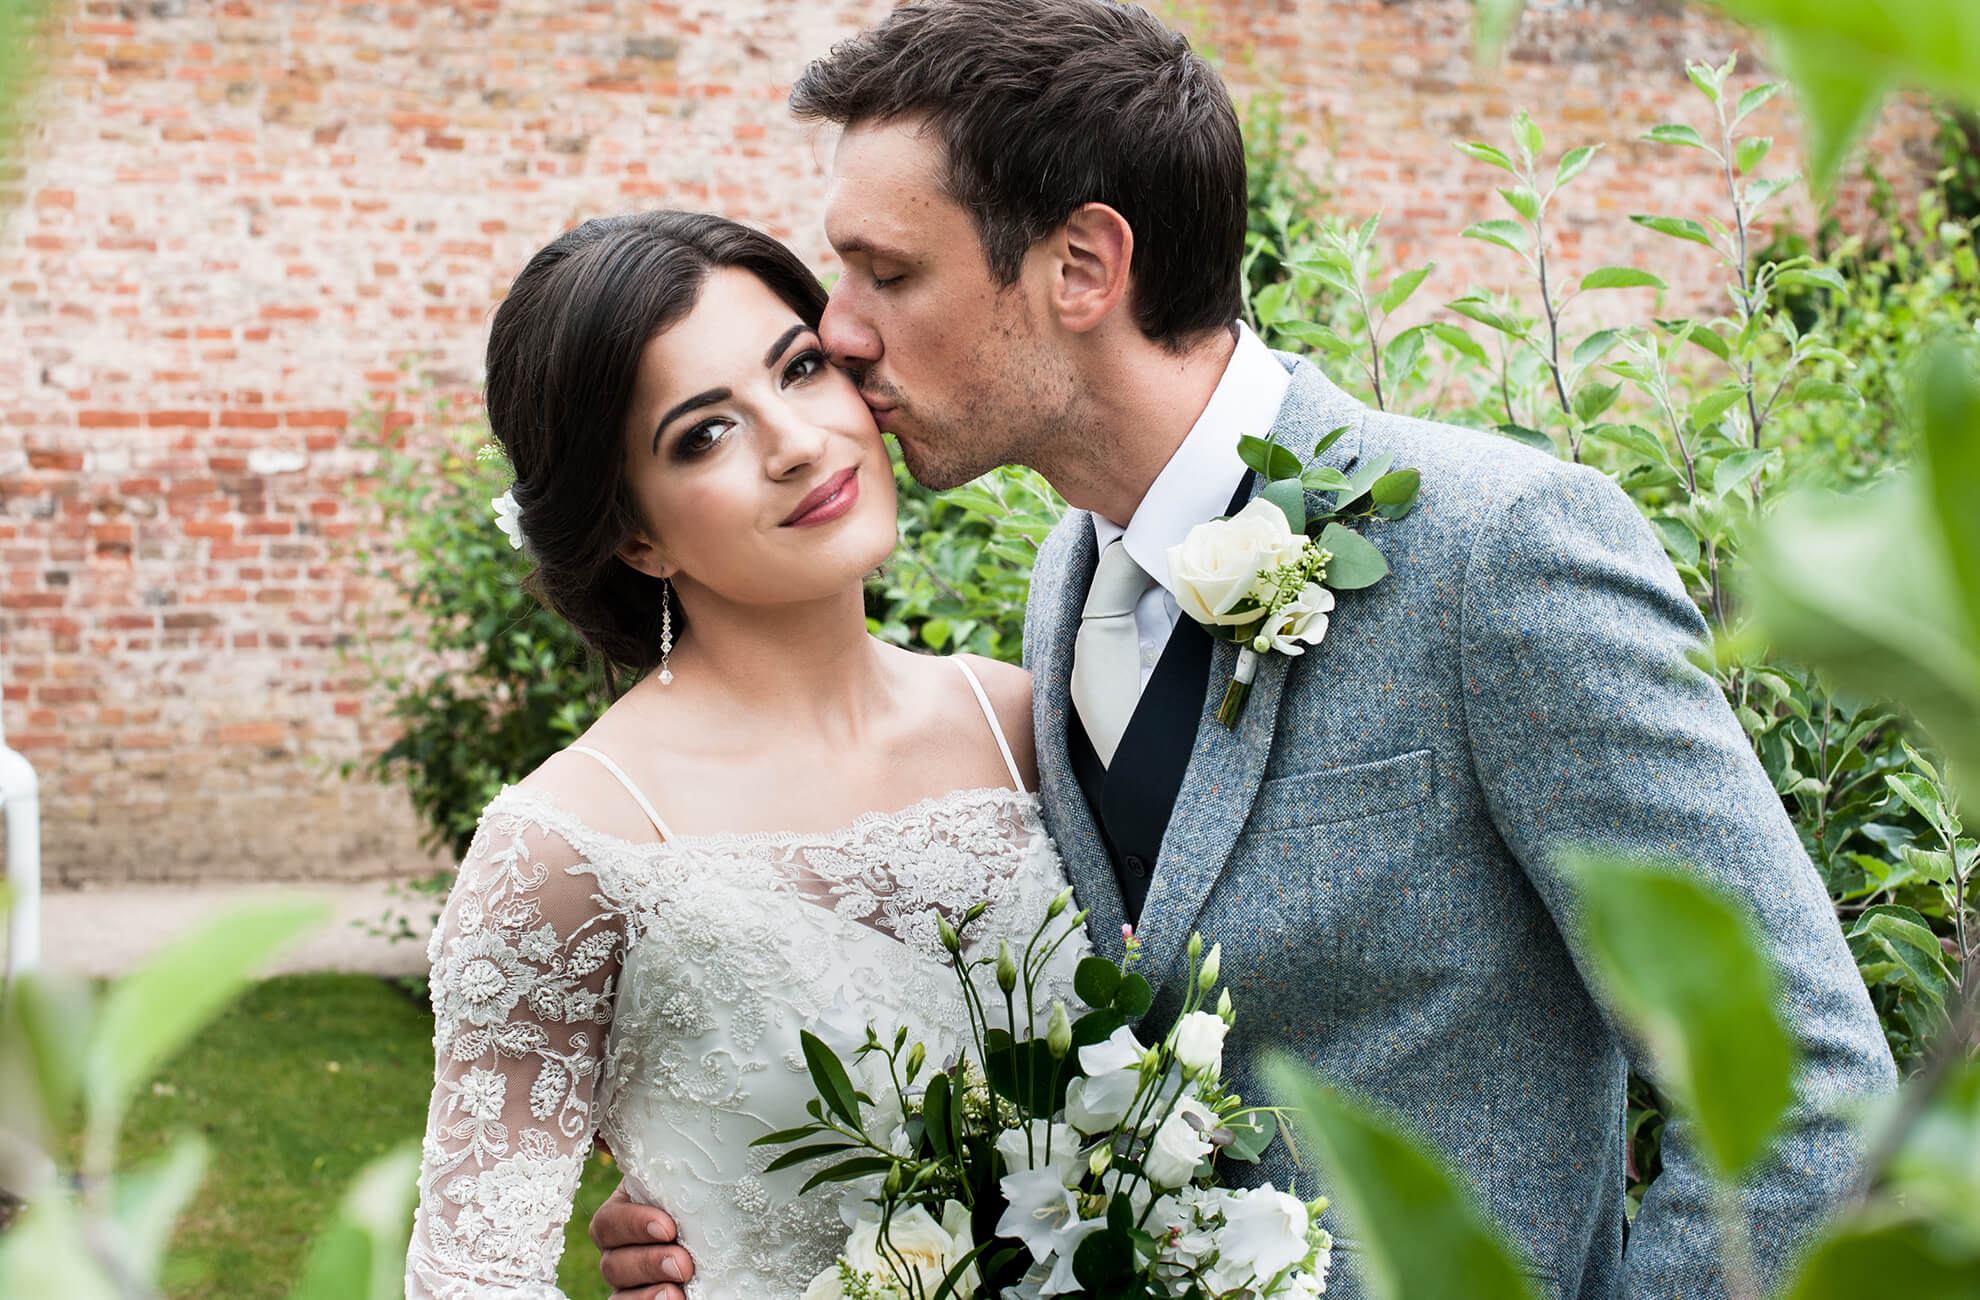 The groom kisses his bride in the gardens at this Shropshire country wedding venue